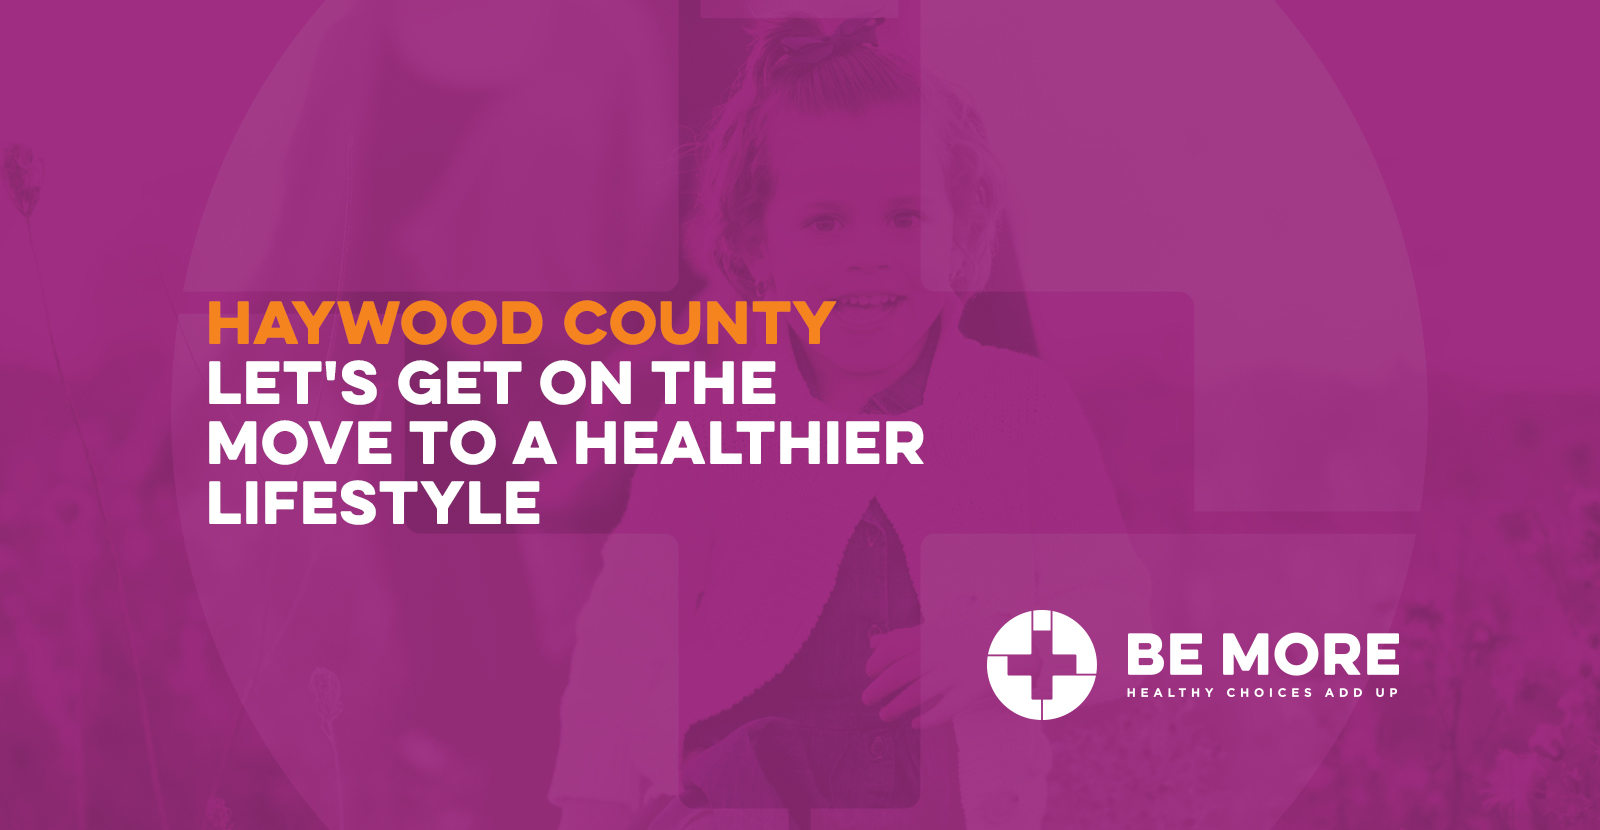 Tennessee haywood county brownsville - Be More Live More Haywood County